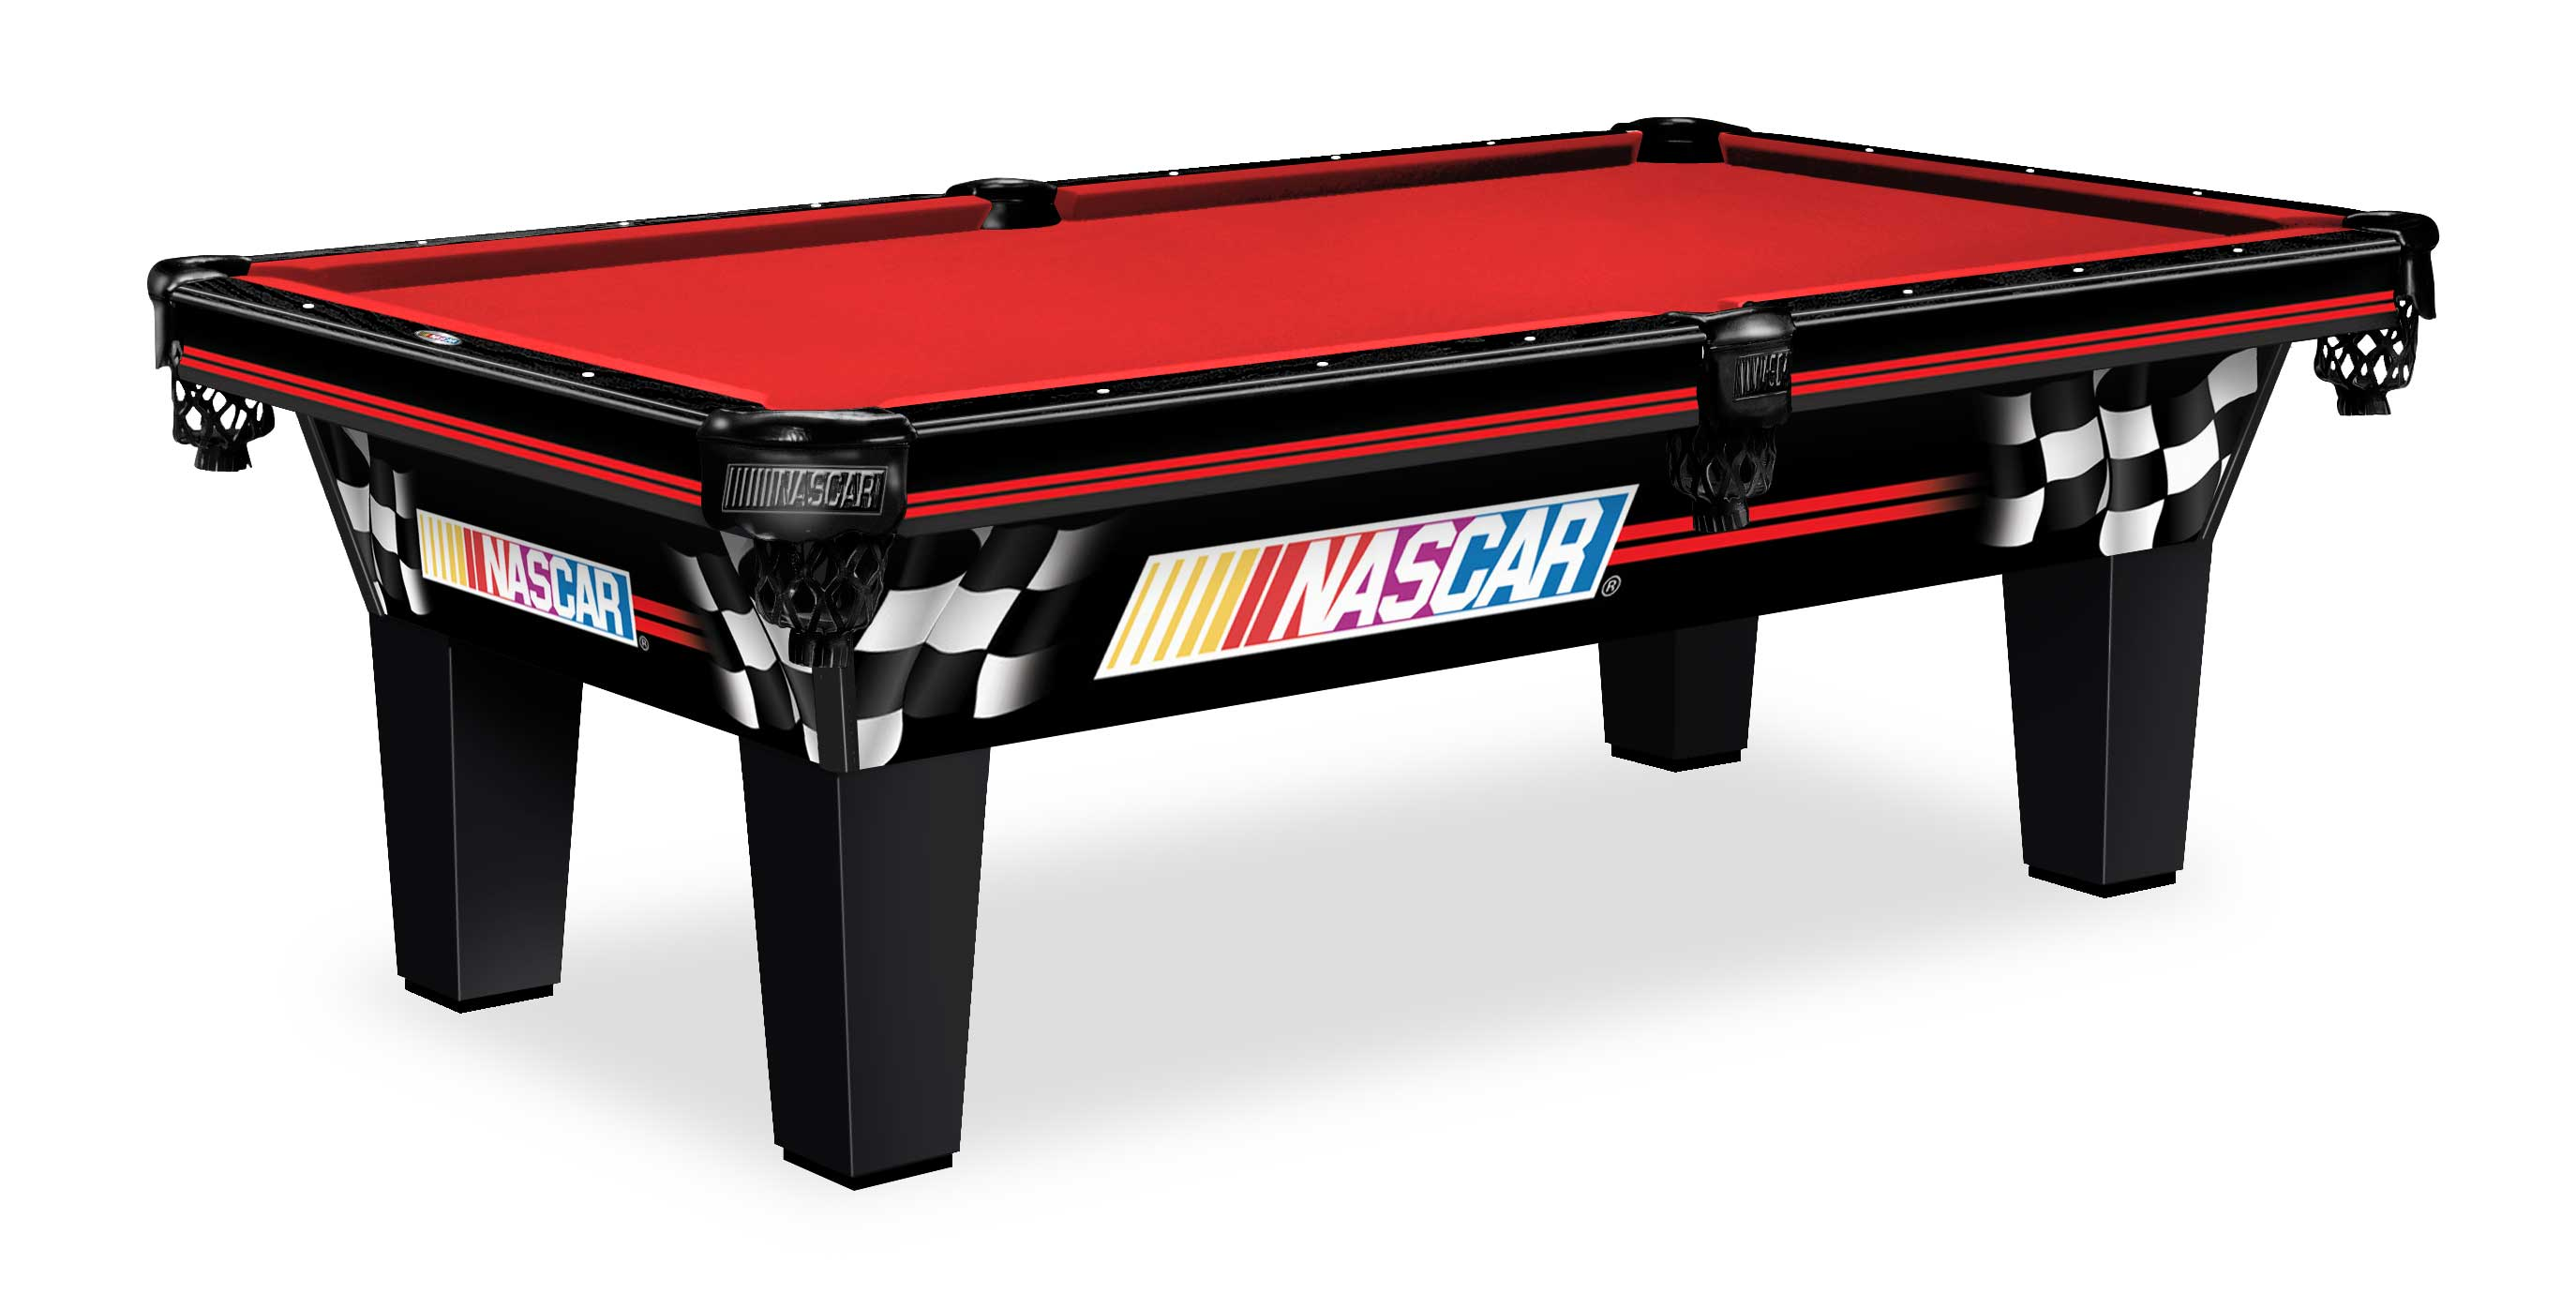 New Jersey Nascar Pool Tables Olhausen Billiards Pool Table NJ - Billiard table services